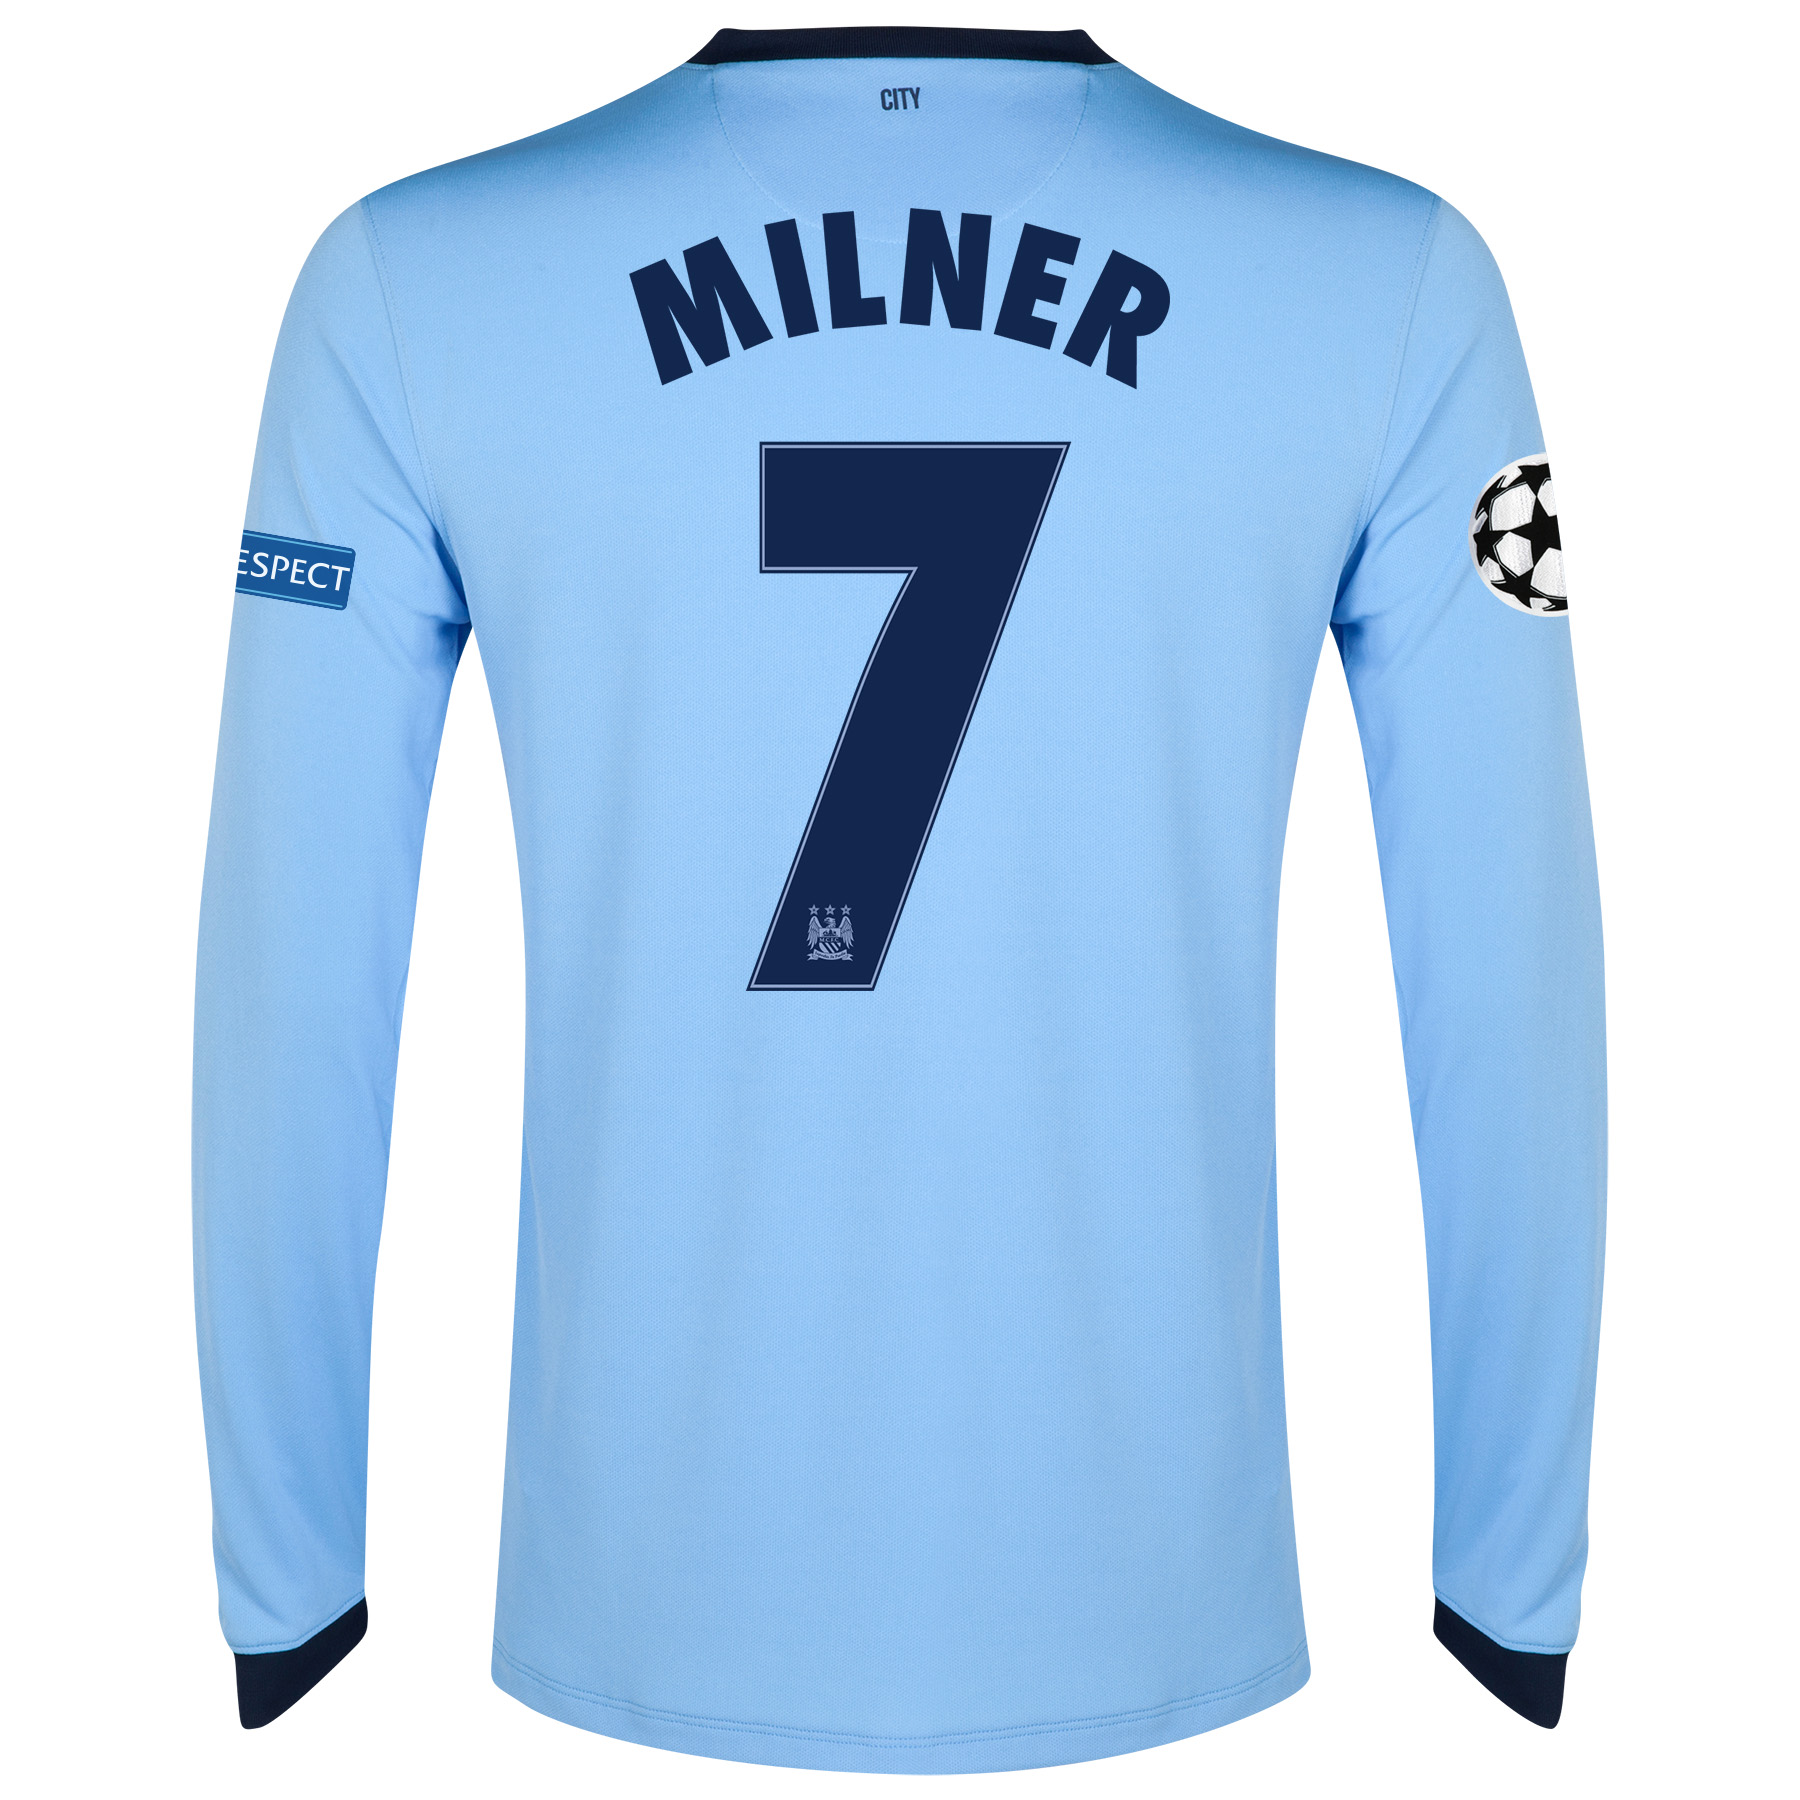 Manchester City UEFA Champions League Home Shirt 2014/15 - Long Sleeve Sky Blue with Milner 7 printing